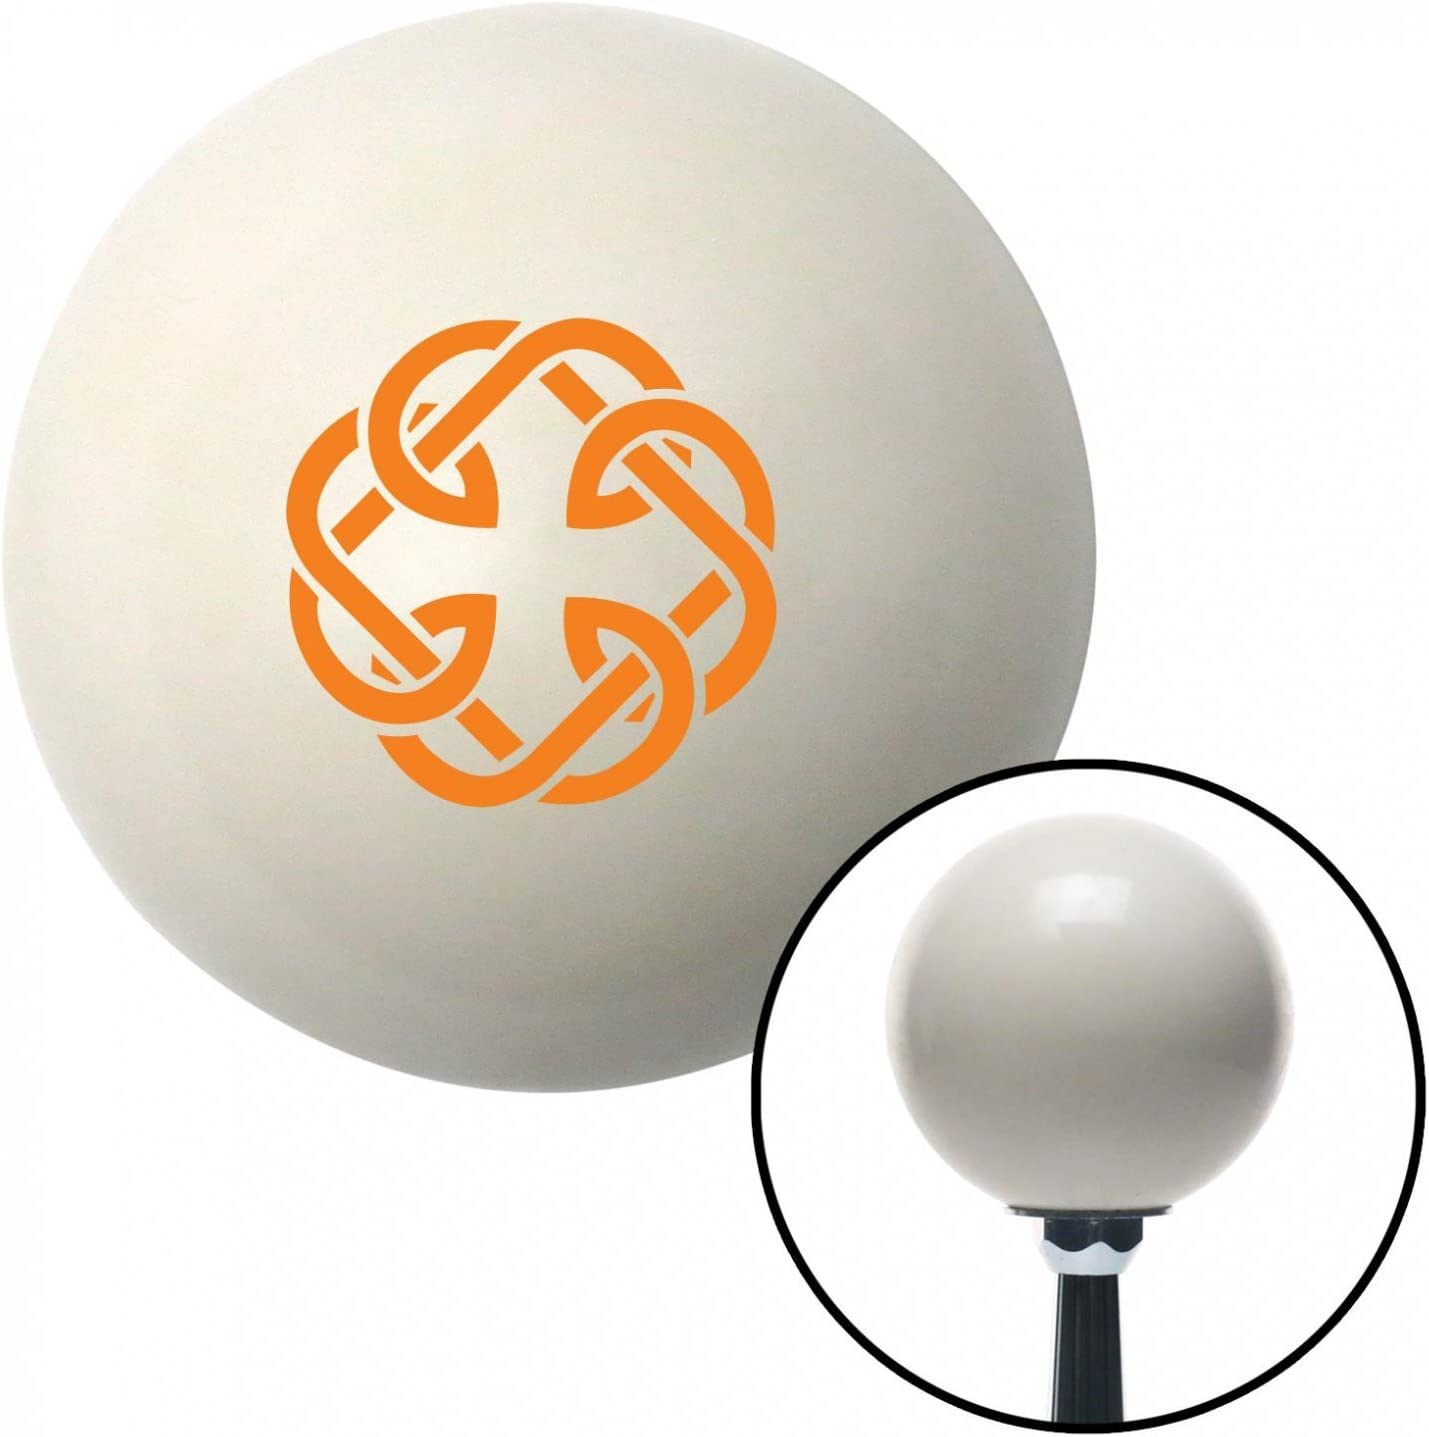 American Shifter 42163 Limited time cheap sale Ivory Shift Knob Insert x 1.5 with Factory outlet 16mm